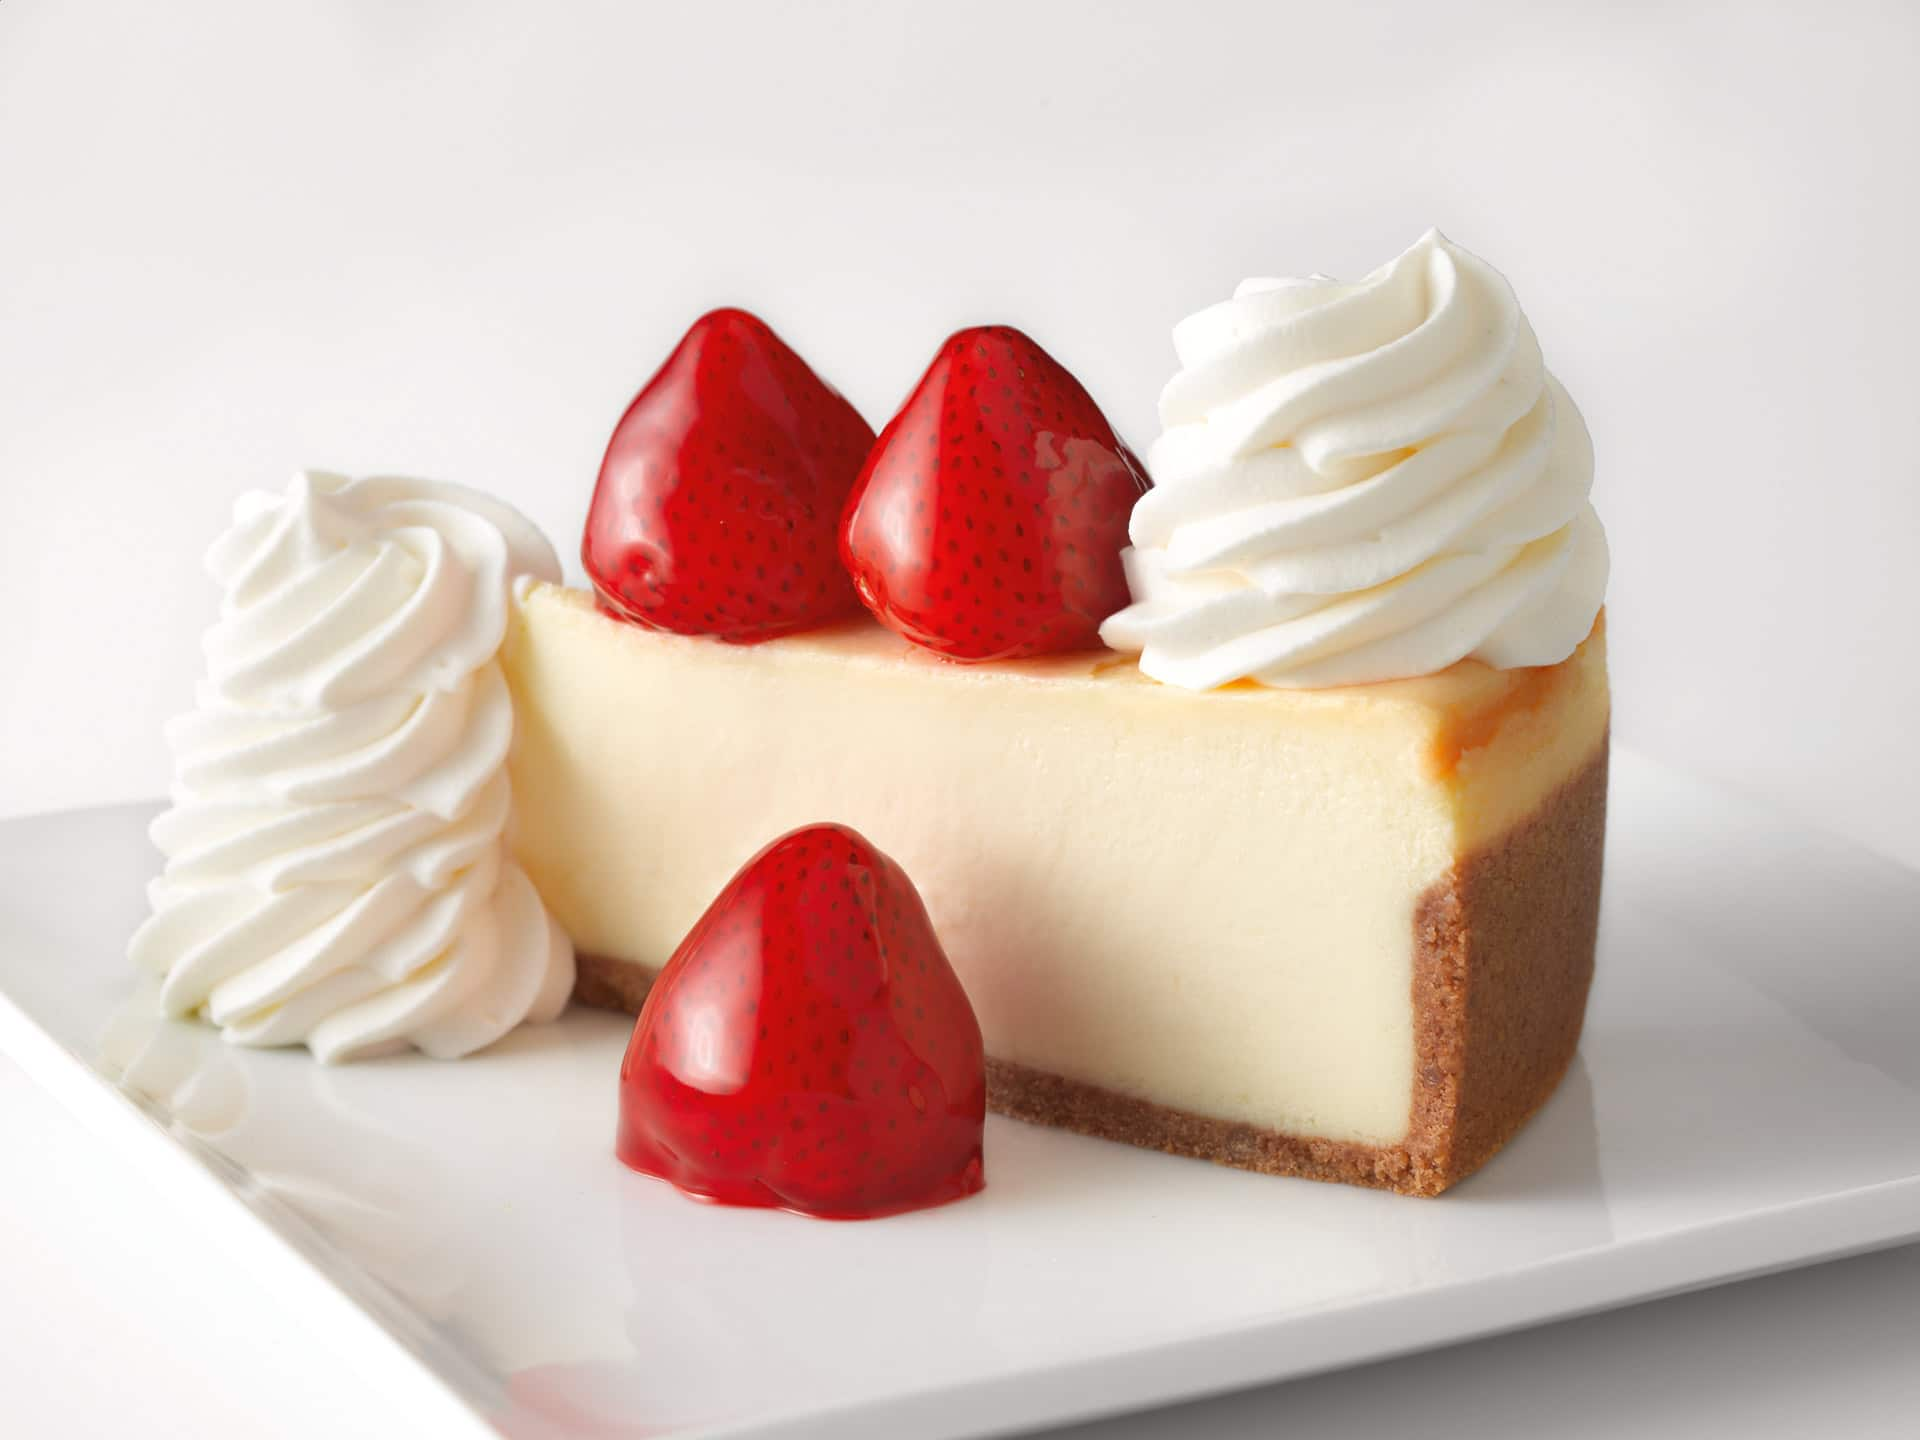 Cheesecake Factory $25 eGC (eGC only) + 2 free slices for every $25 eGC purchase-12/21/15 only